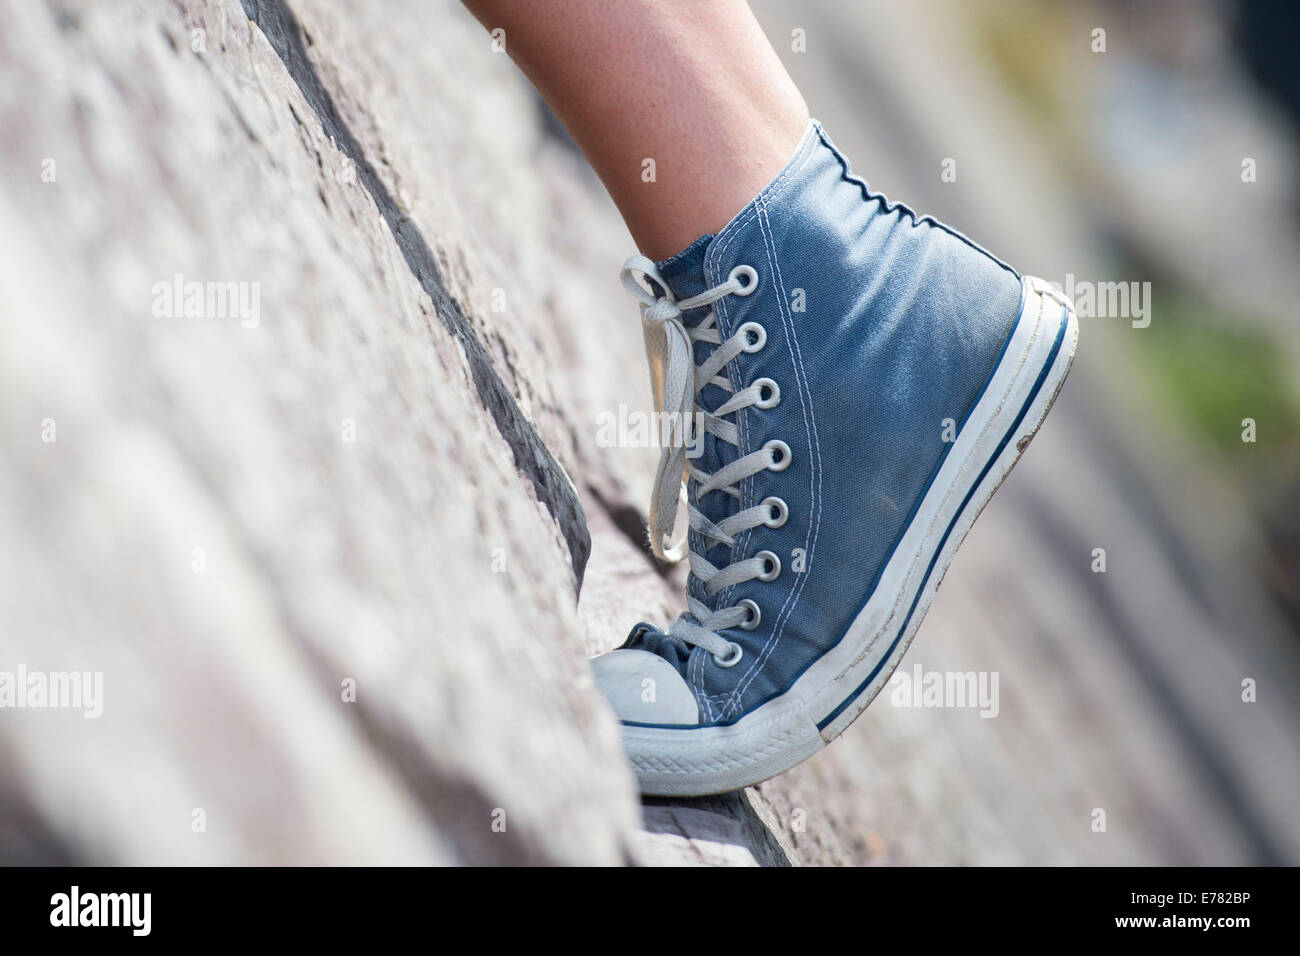 A girl's foot seen wearing Converse stretching while rock climbing. - Stock Image